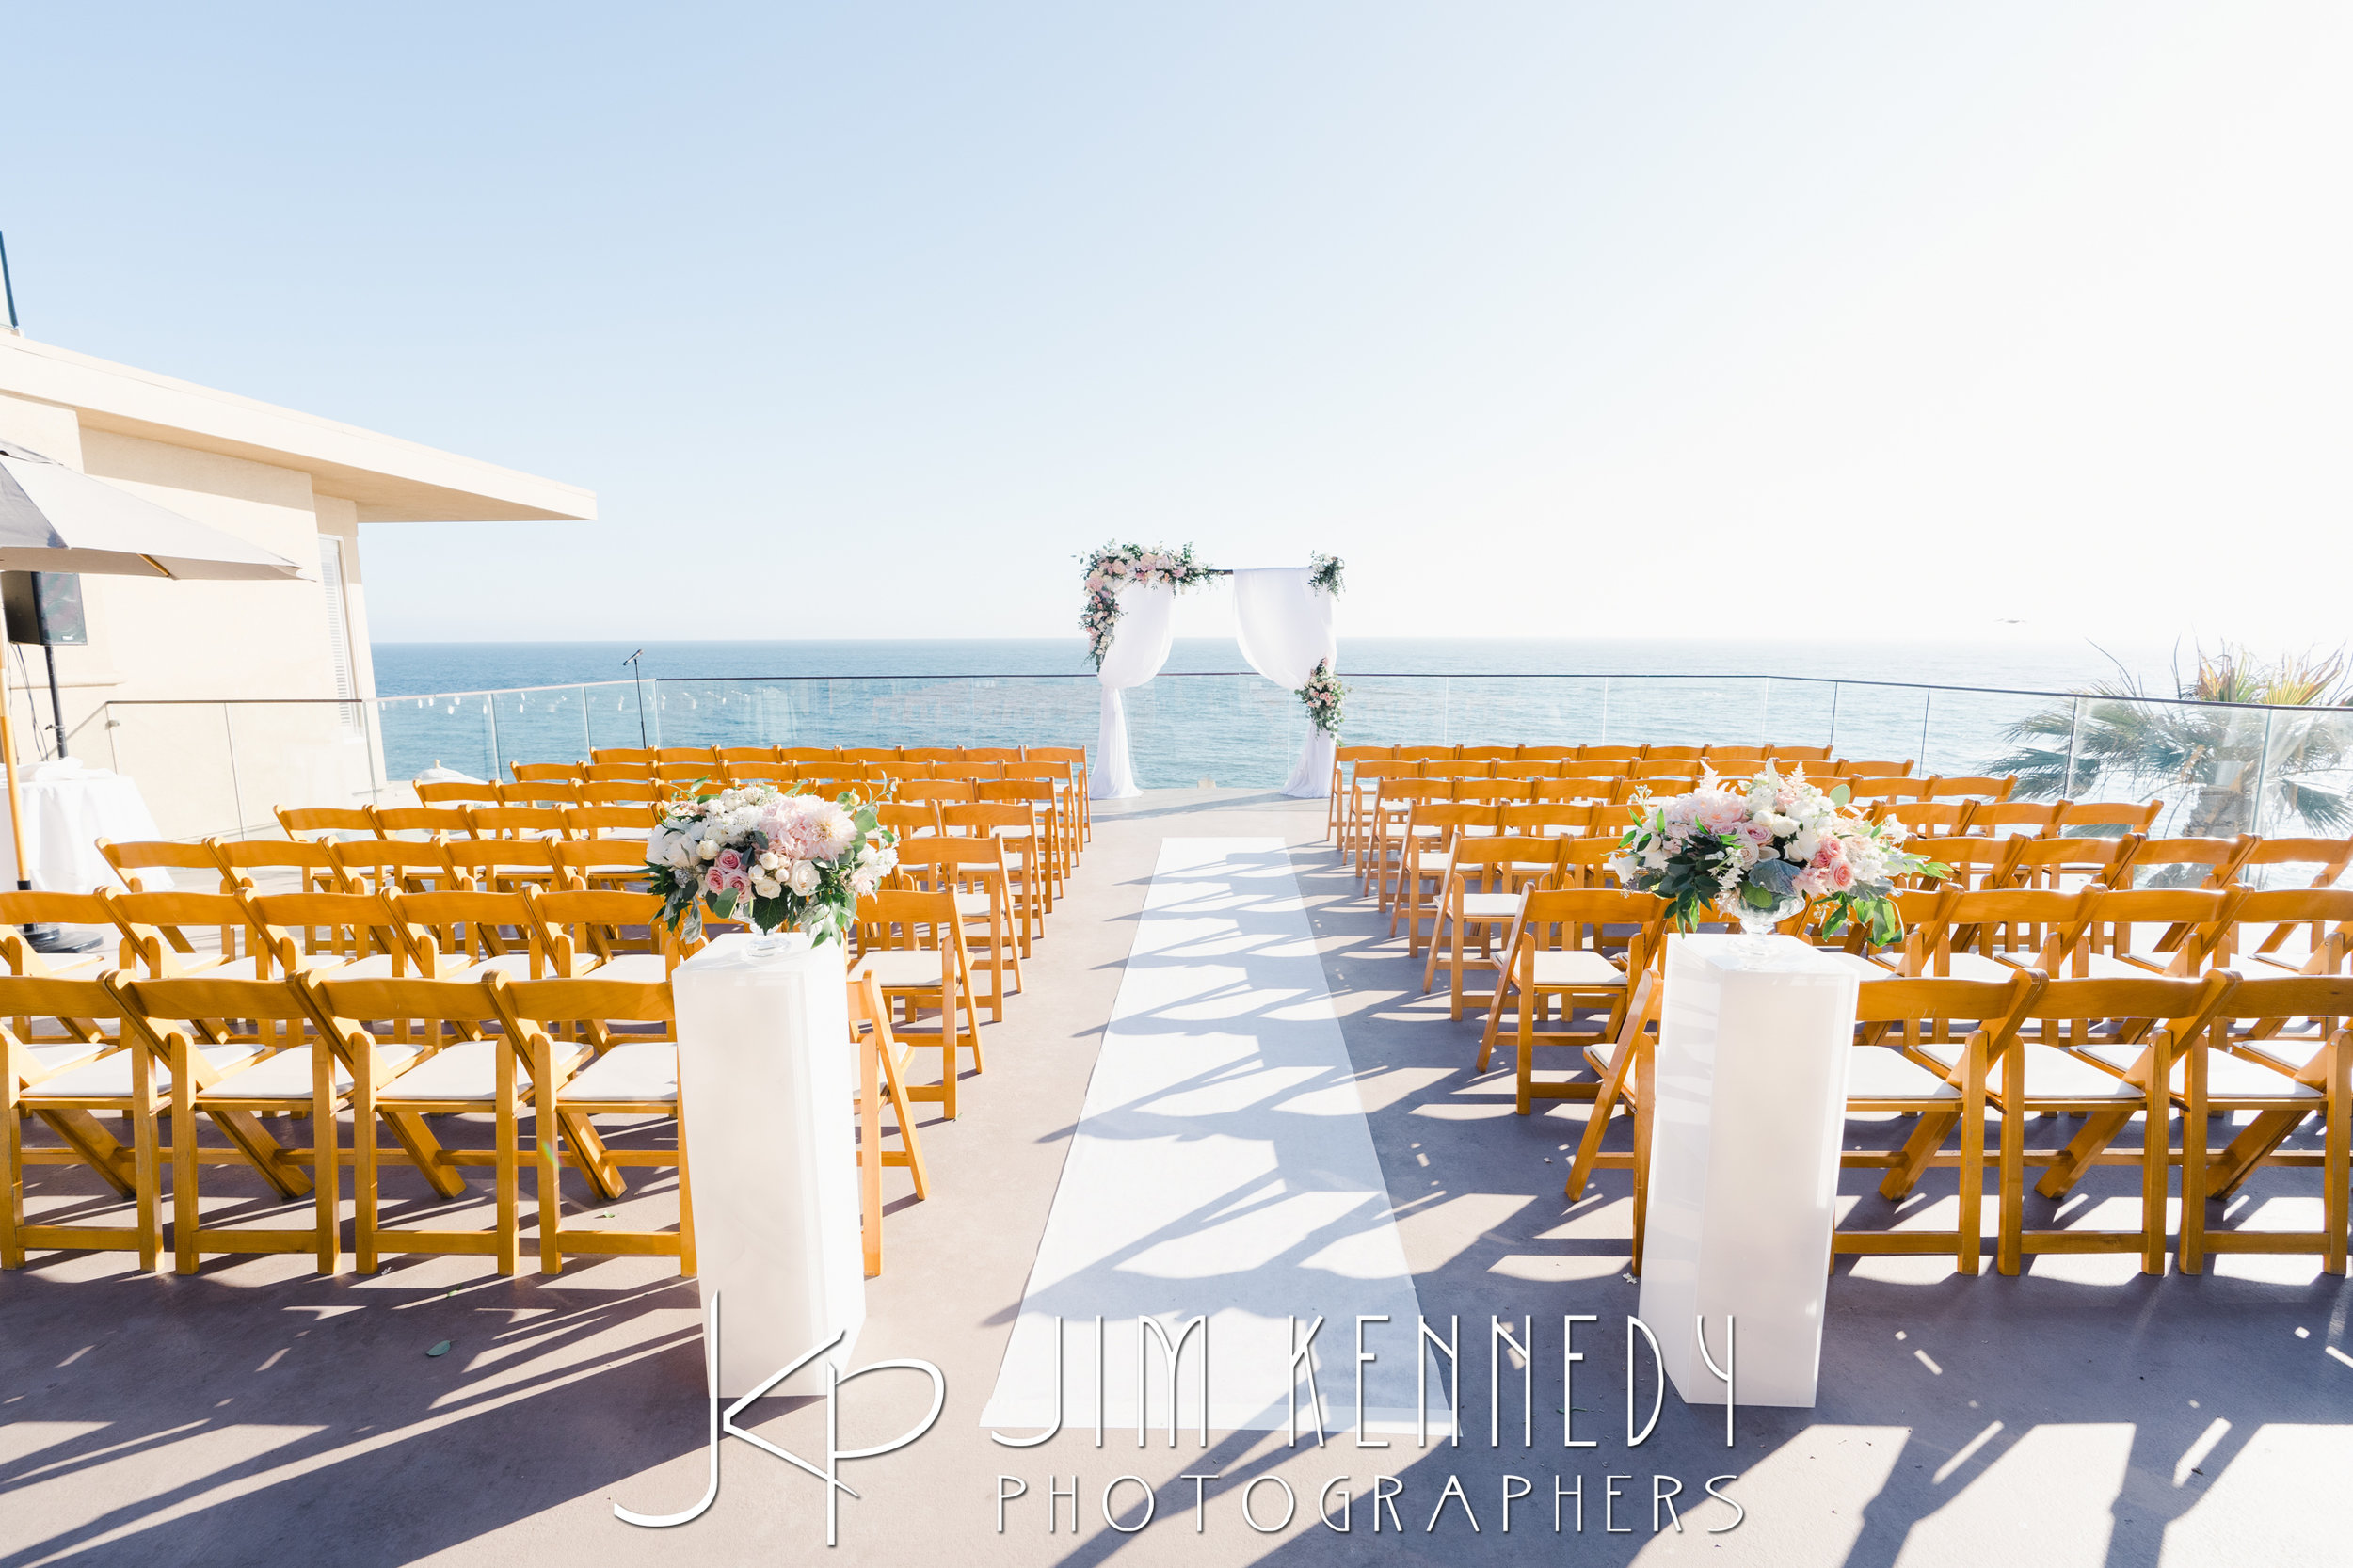 surf-and-sand-resort-wedding-erica-glenn_0155.JPG